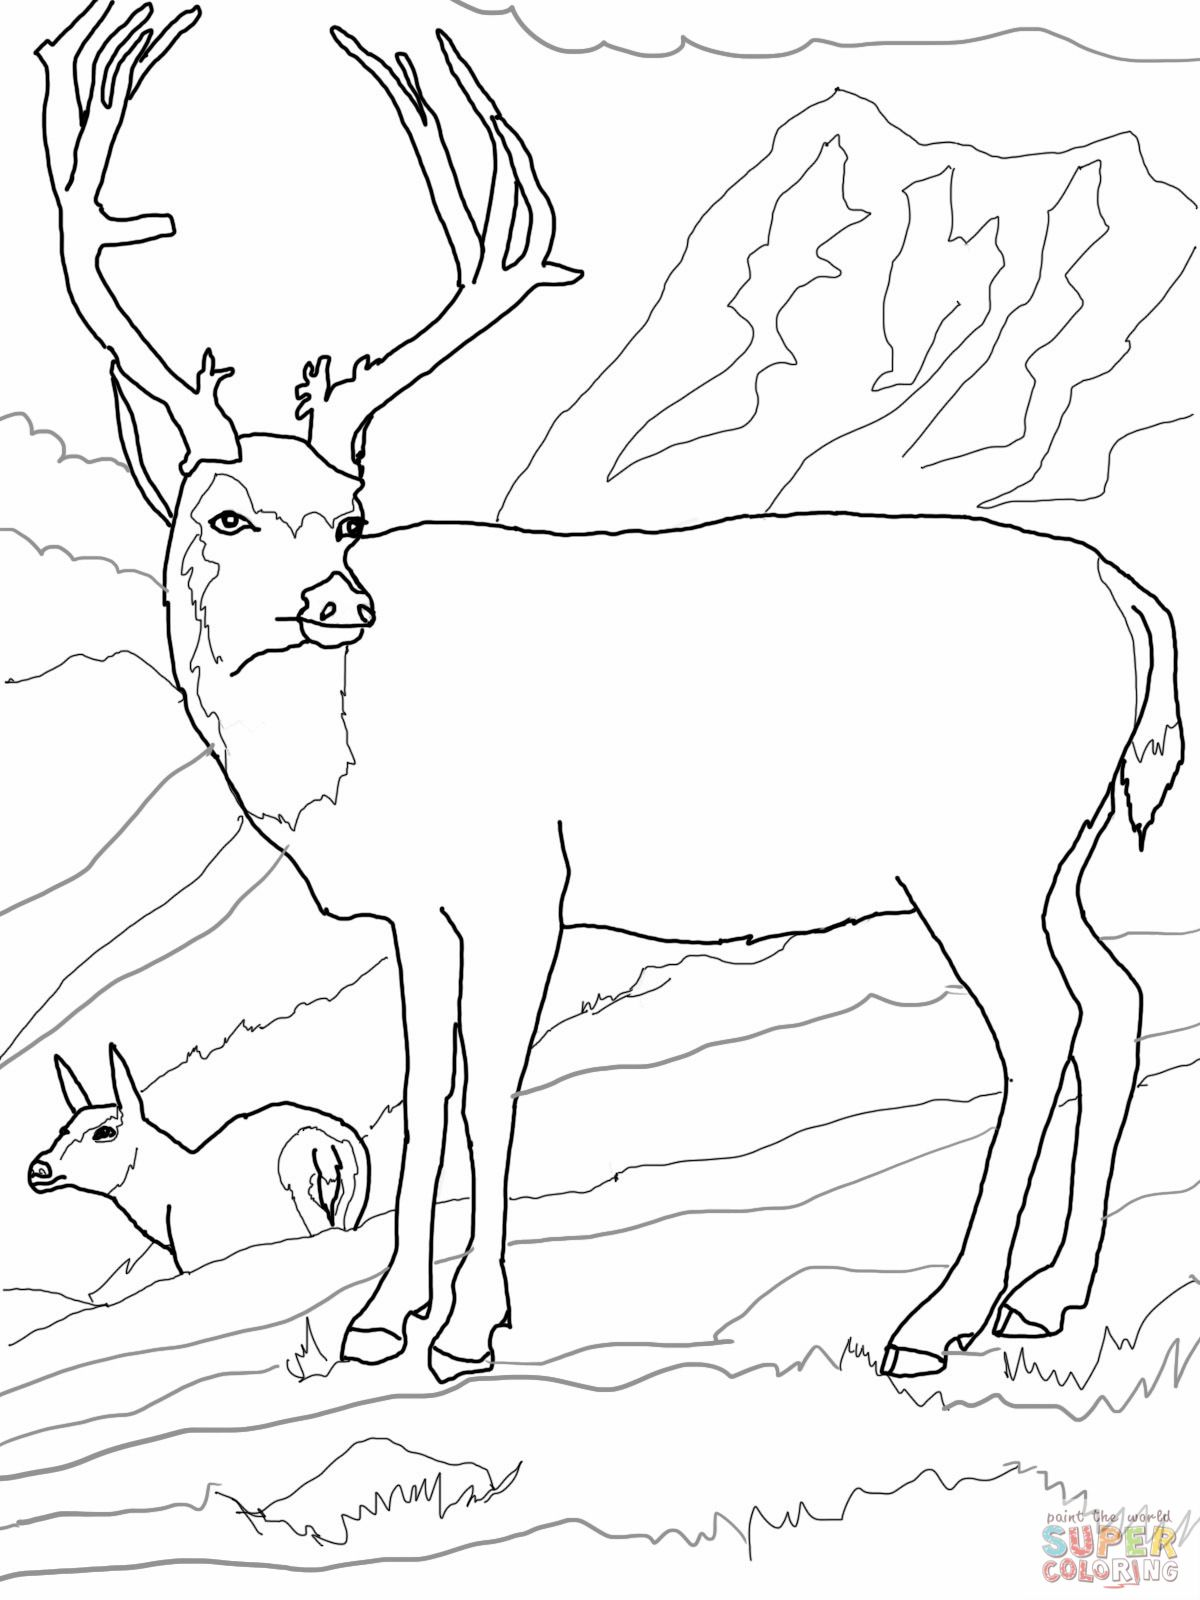 Moose Deer Family Coloring Pages Deer Coloring Pages Coloring